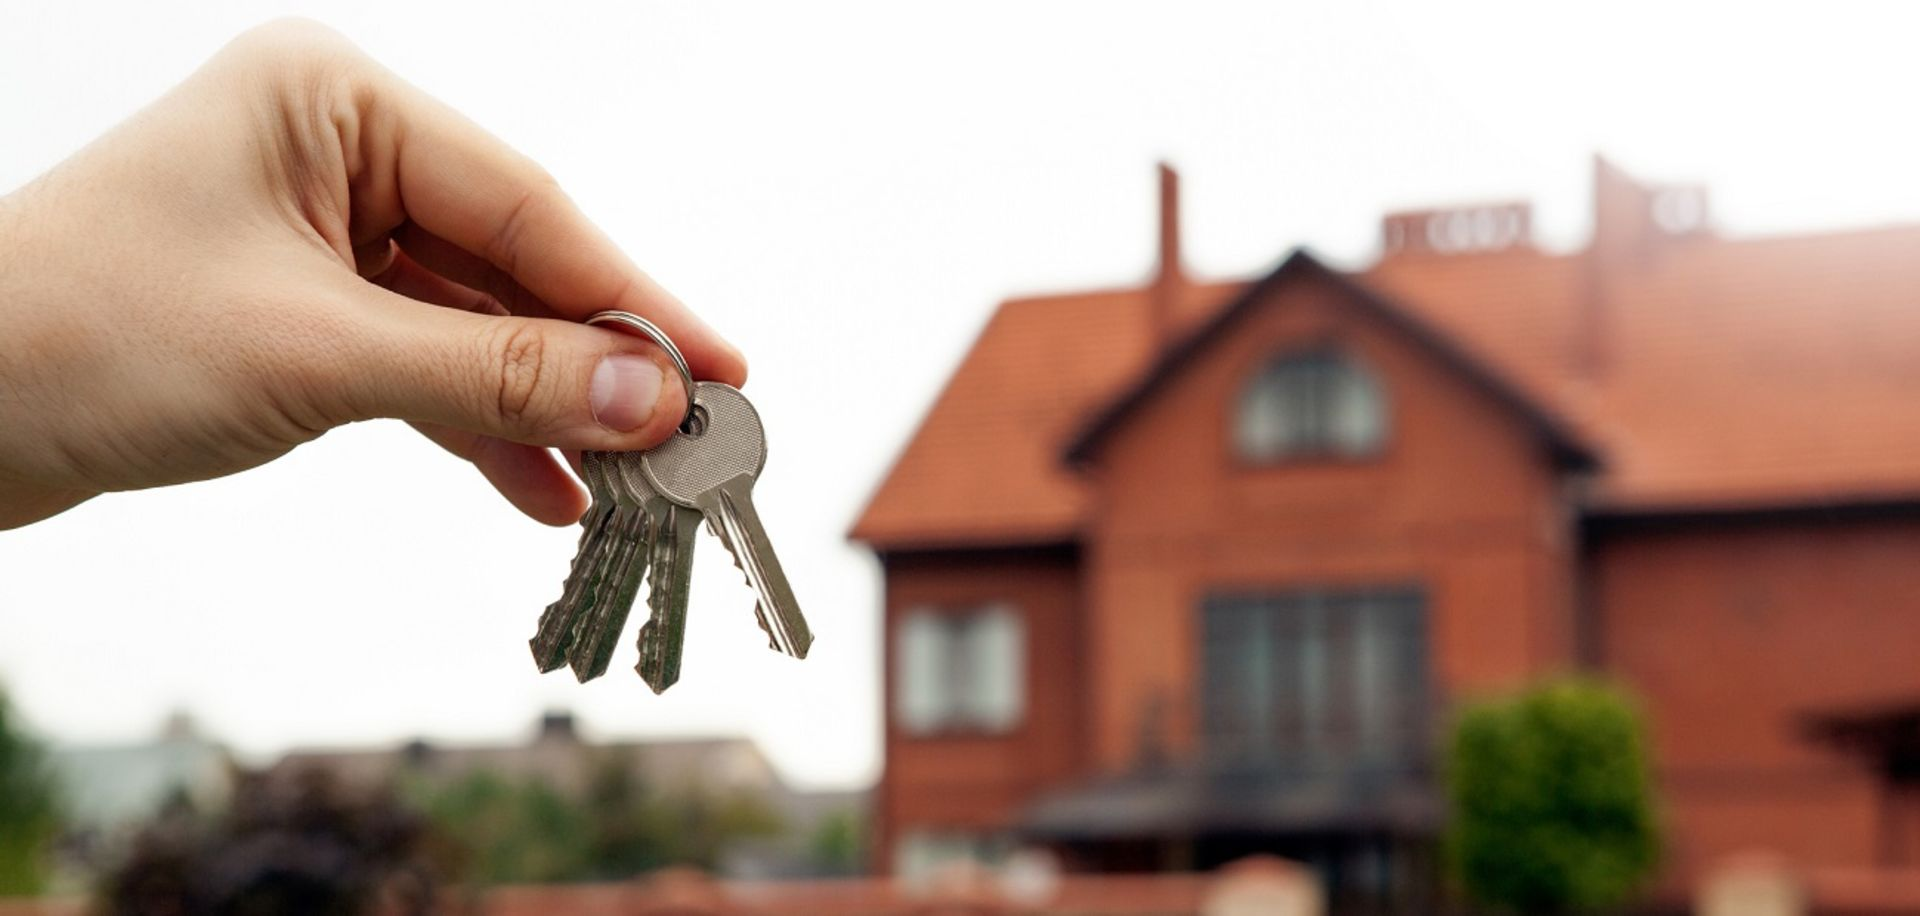 NJ HOME PRICES SEEN RISING FURTHER IN 2021  Sidelined buyers better get a move on it, before interest rates tick up, analyst says